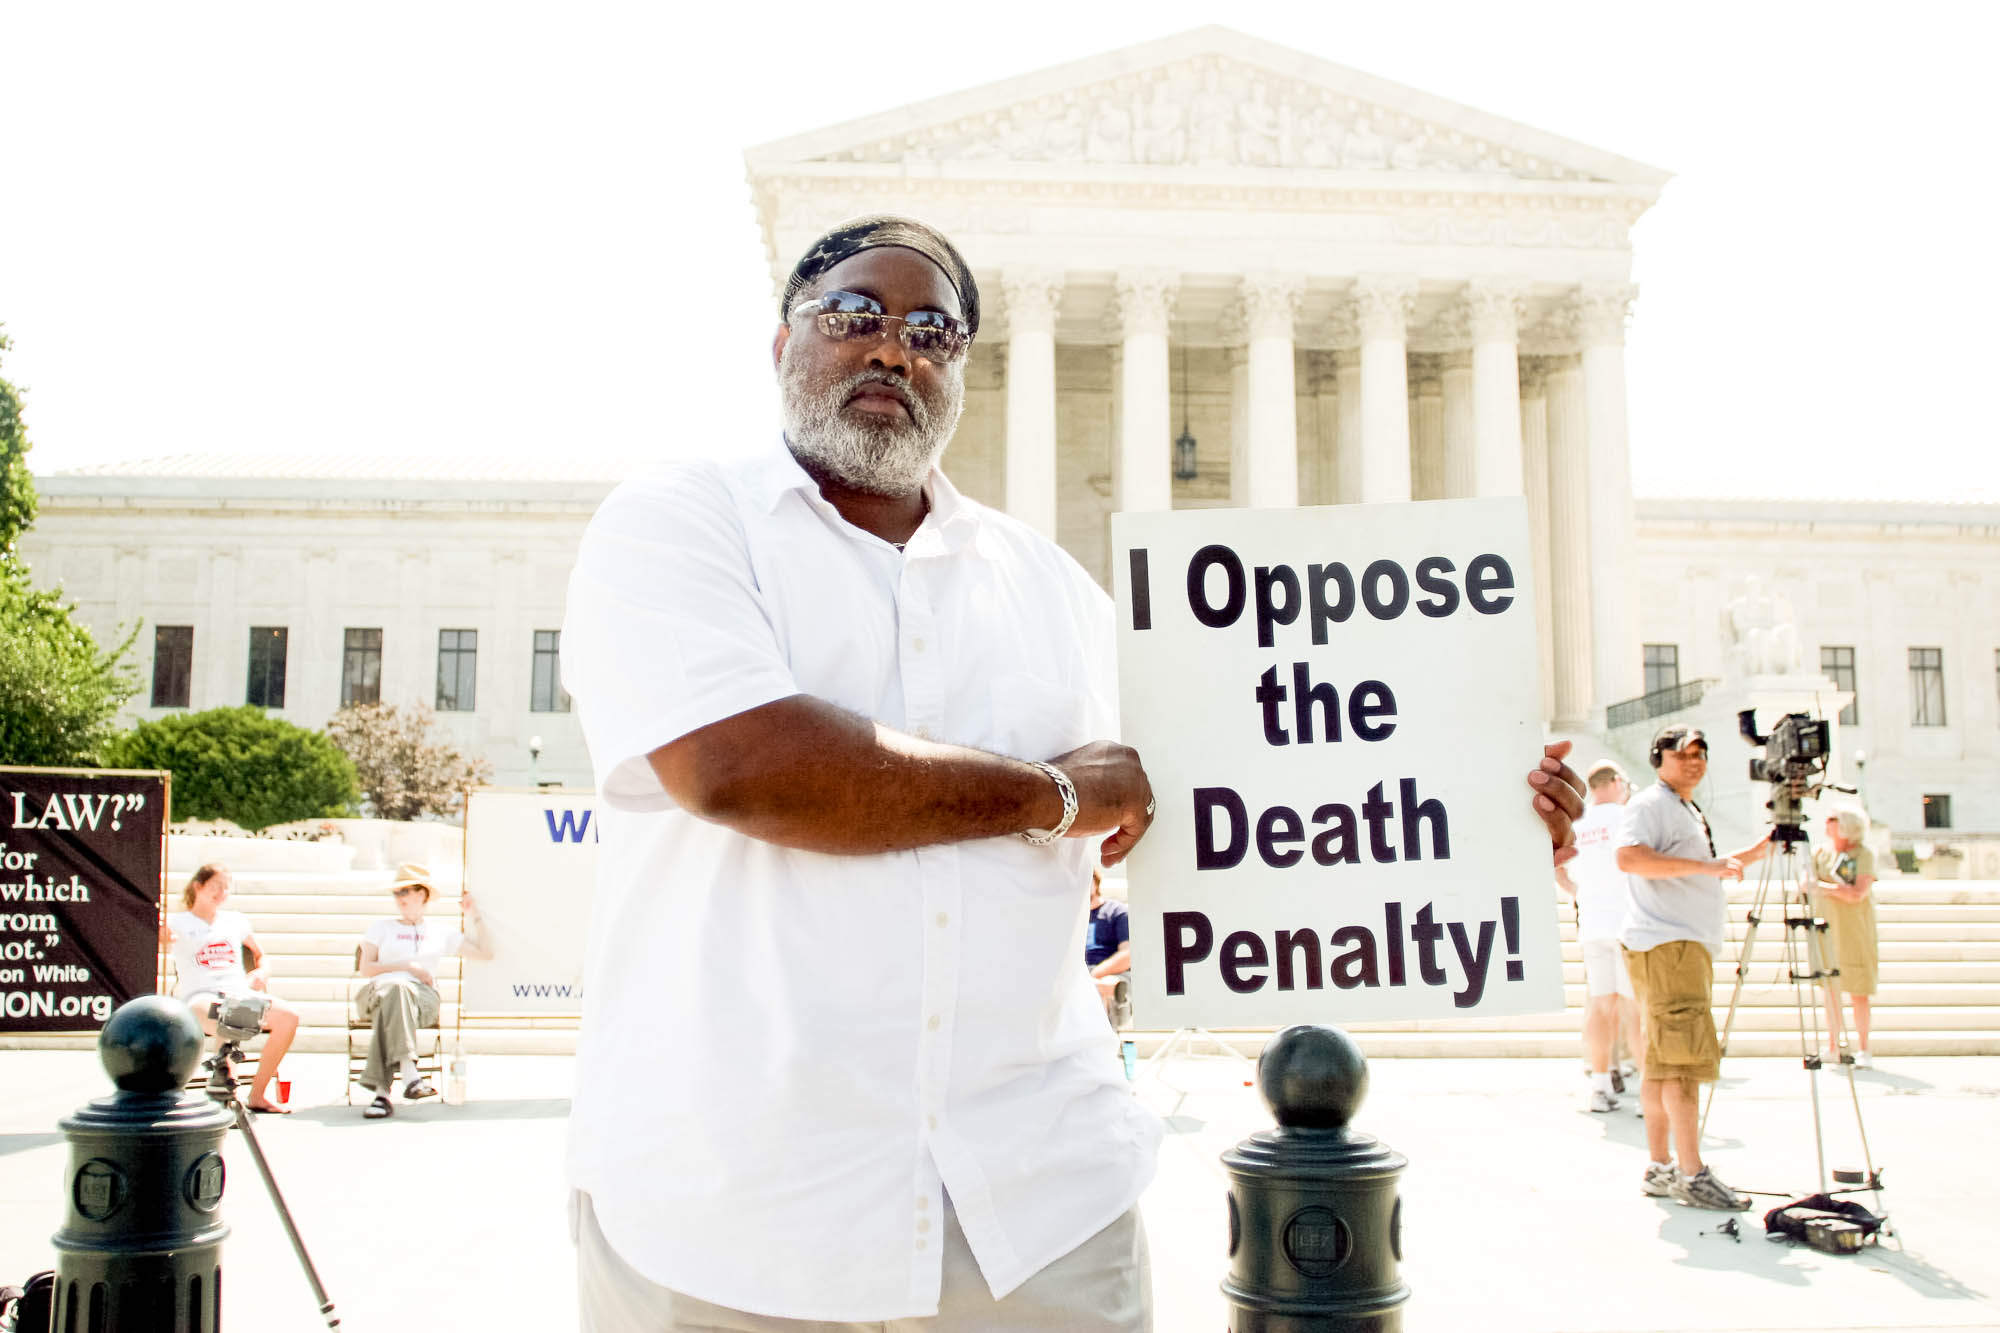 Harold Wilson - Pennsylvania - death row innocent, wrongful conviction, exonerated